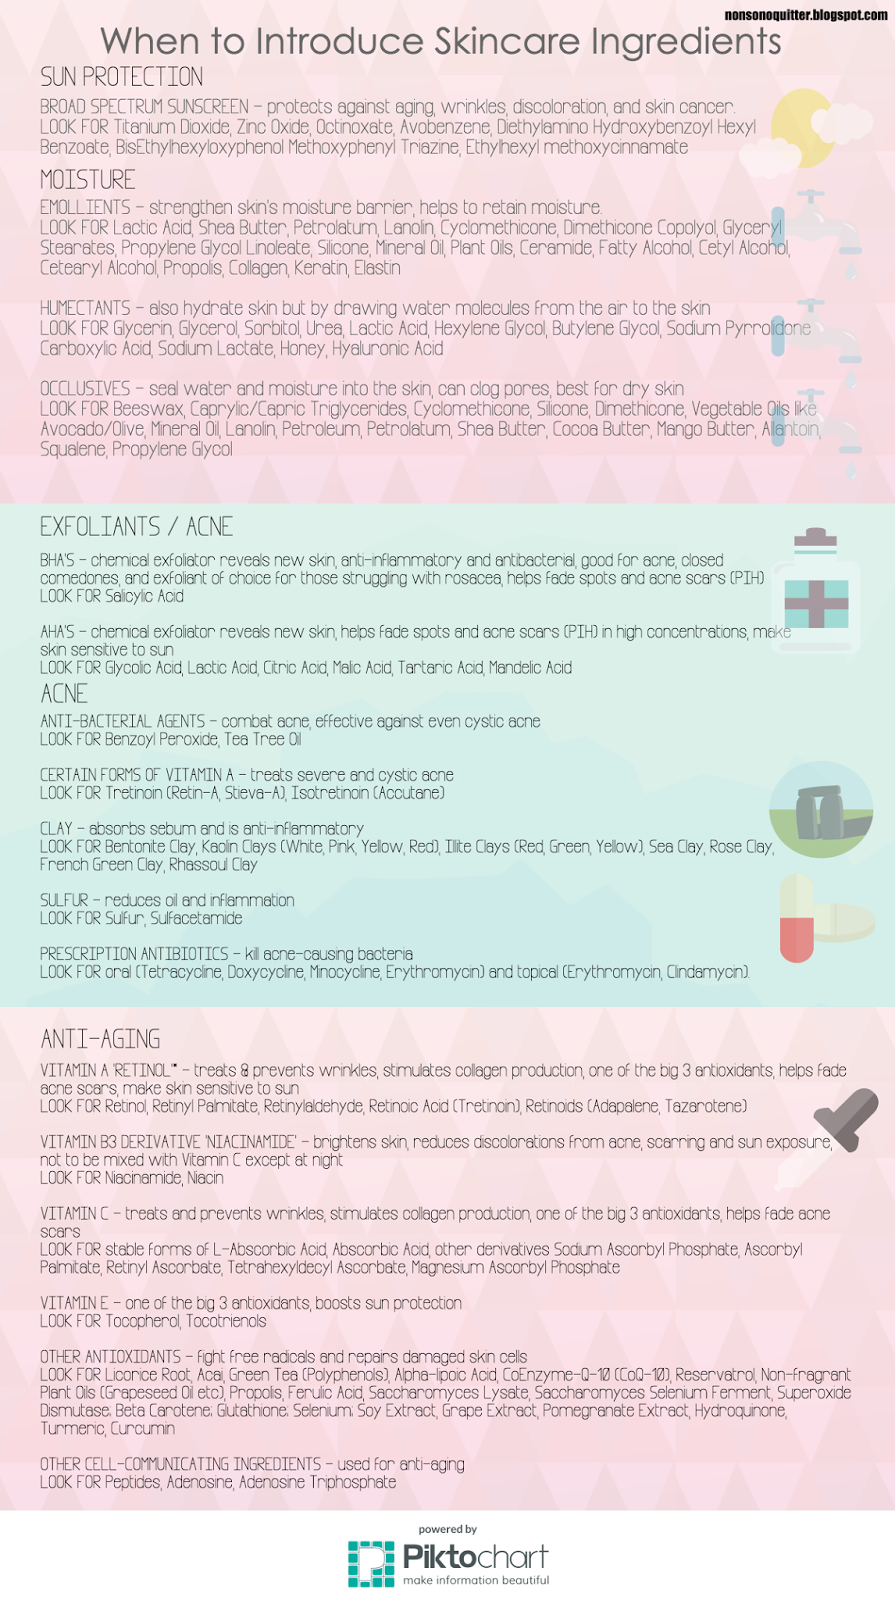 A Skincare Ingredients Cheat Sheet From Nonsonoquitter Blogspot Com Skincare Skincareingredients Infographi Skincare Ingredients Skin Care Beauty Skin Care